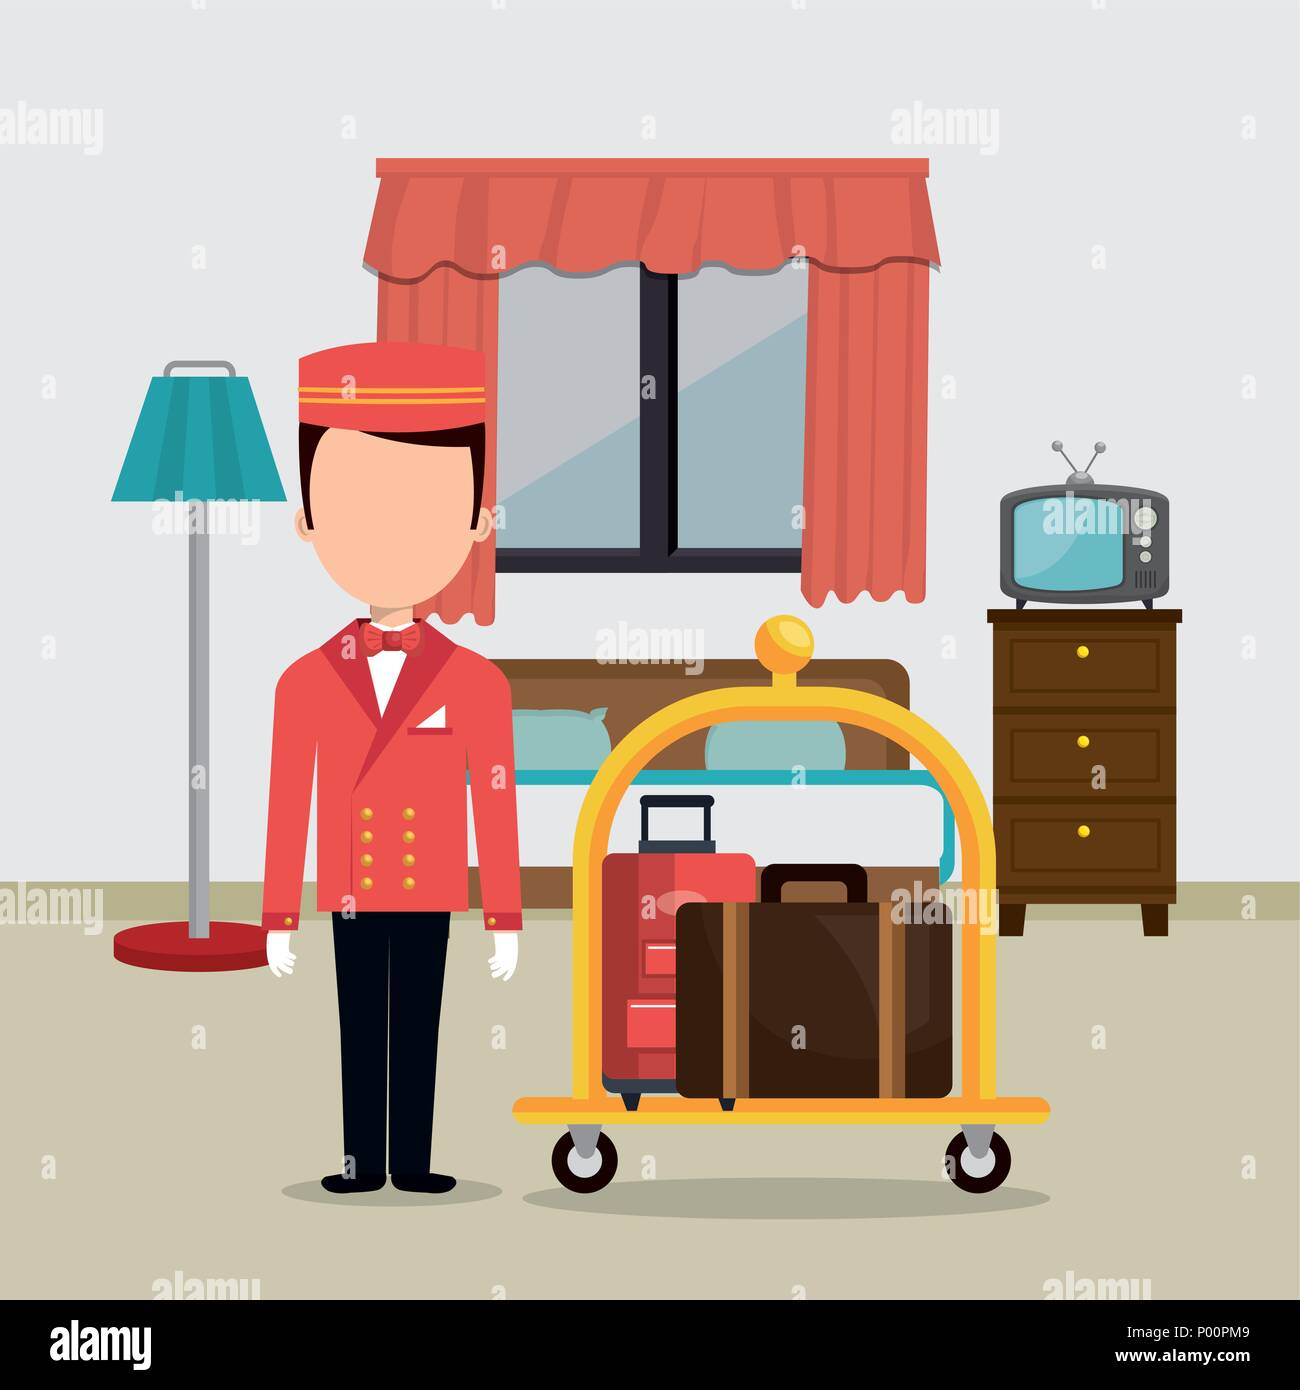 bellboy working in the hotel character - Stock Image